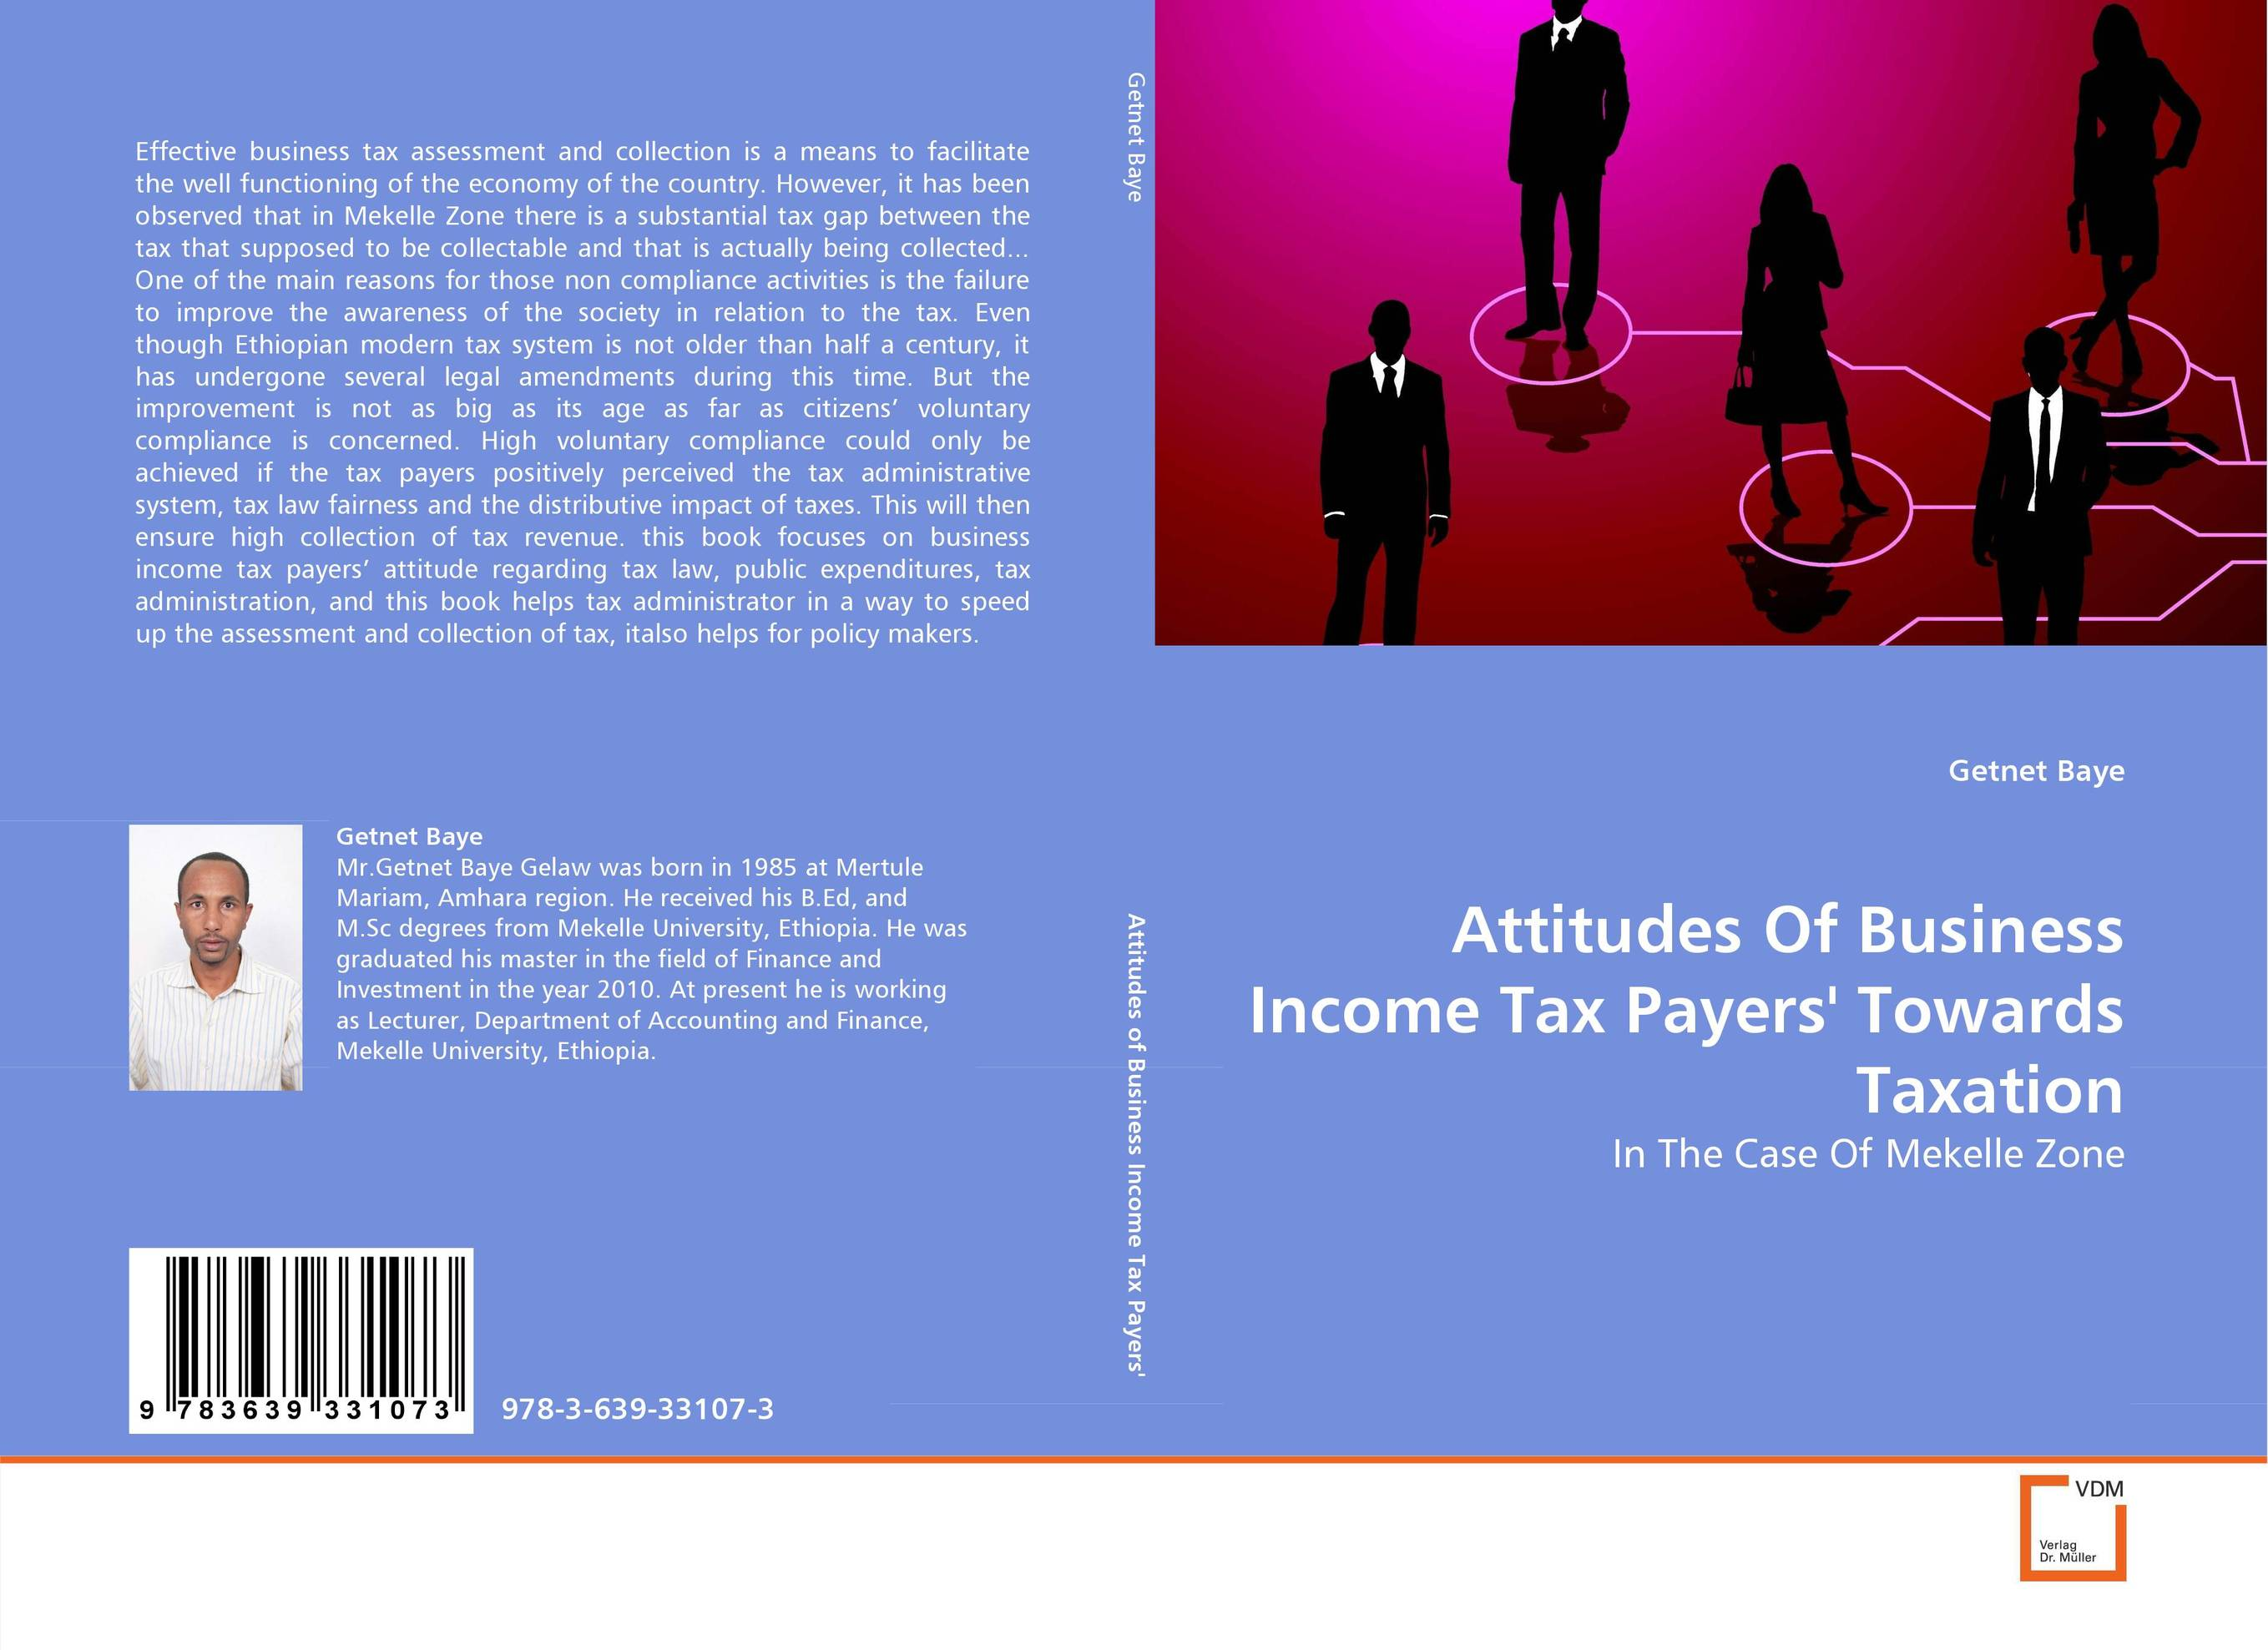 Attitudes Of Business Income Tax Payers'' Towards Taxation global tax fairness